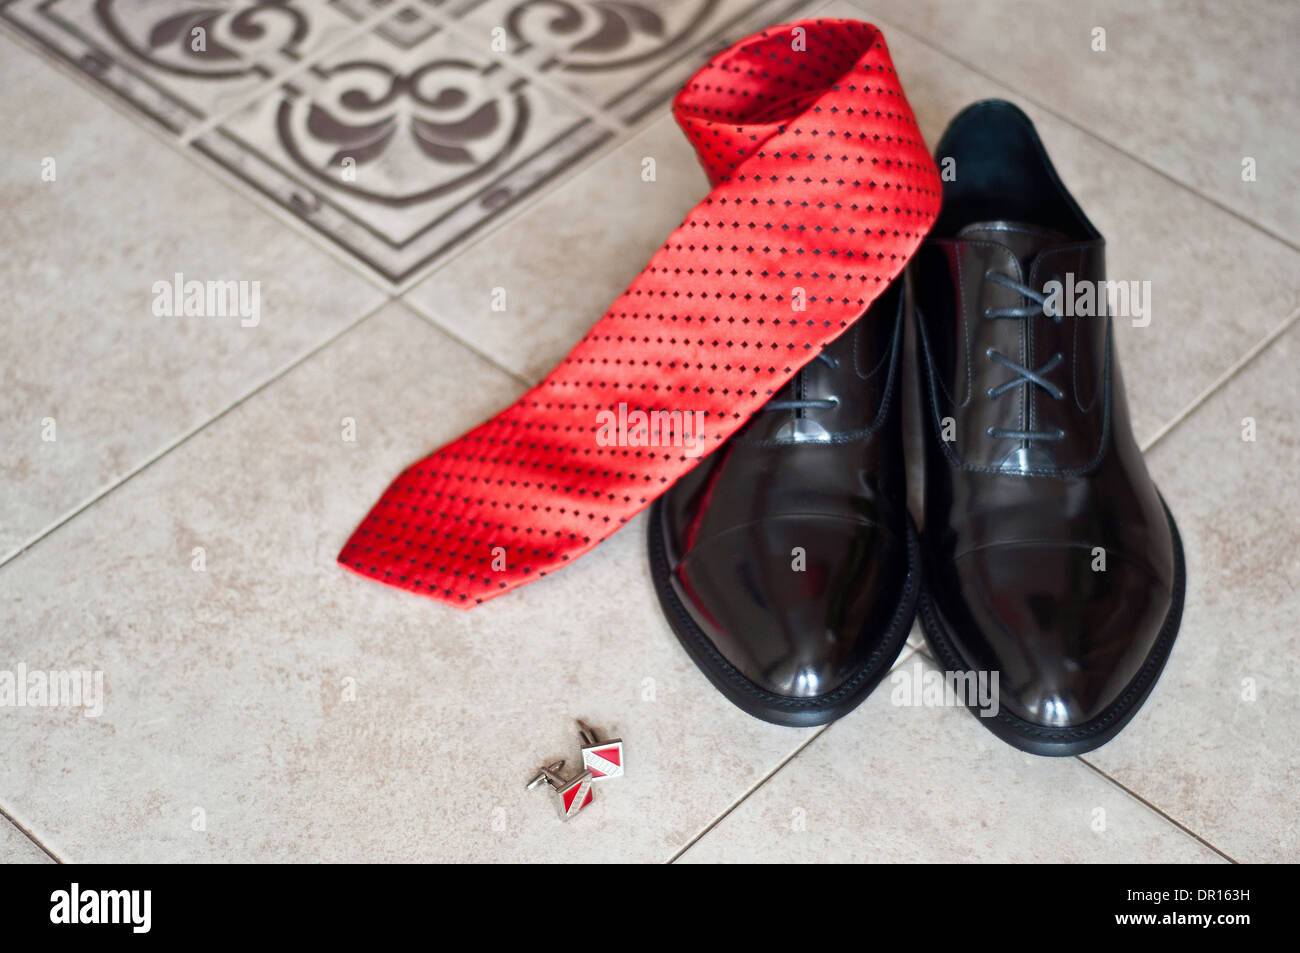 black shoes of the groom, red tie and cuff links on a floor - Stock Image